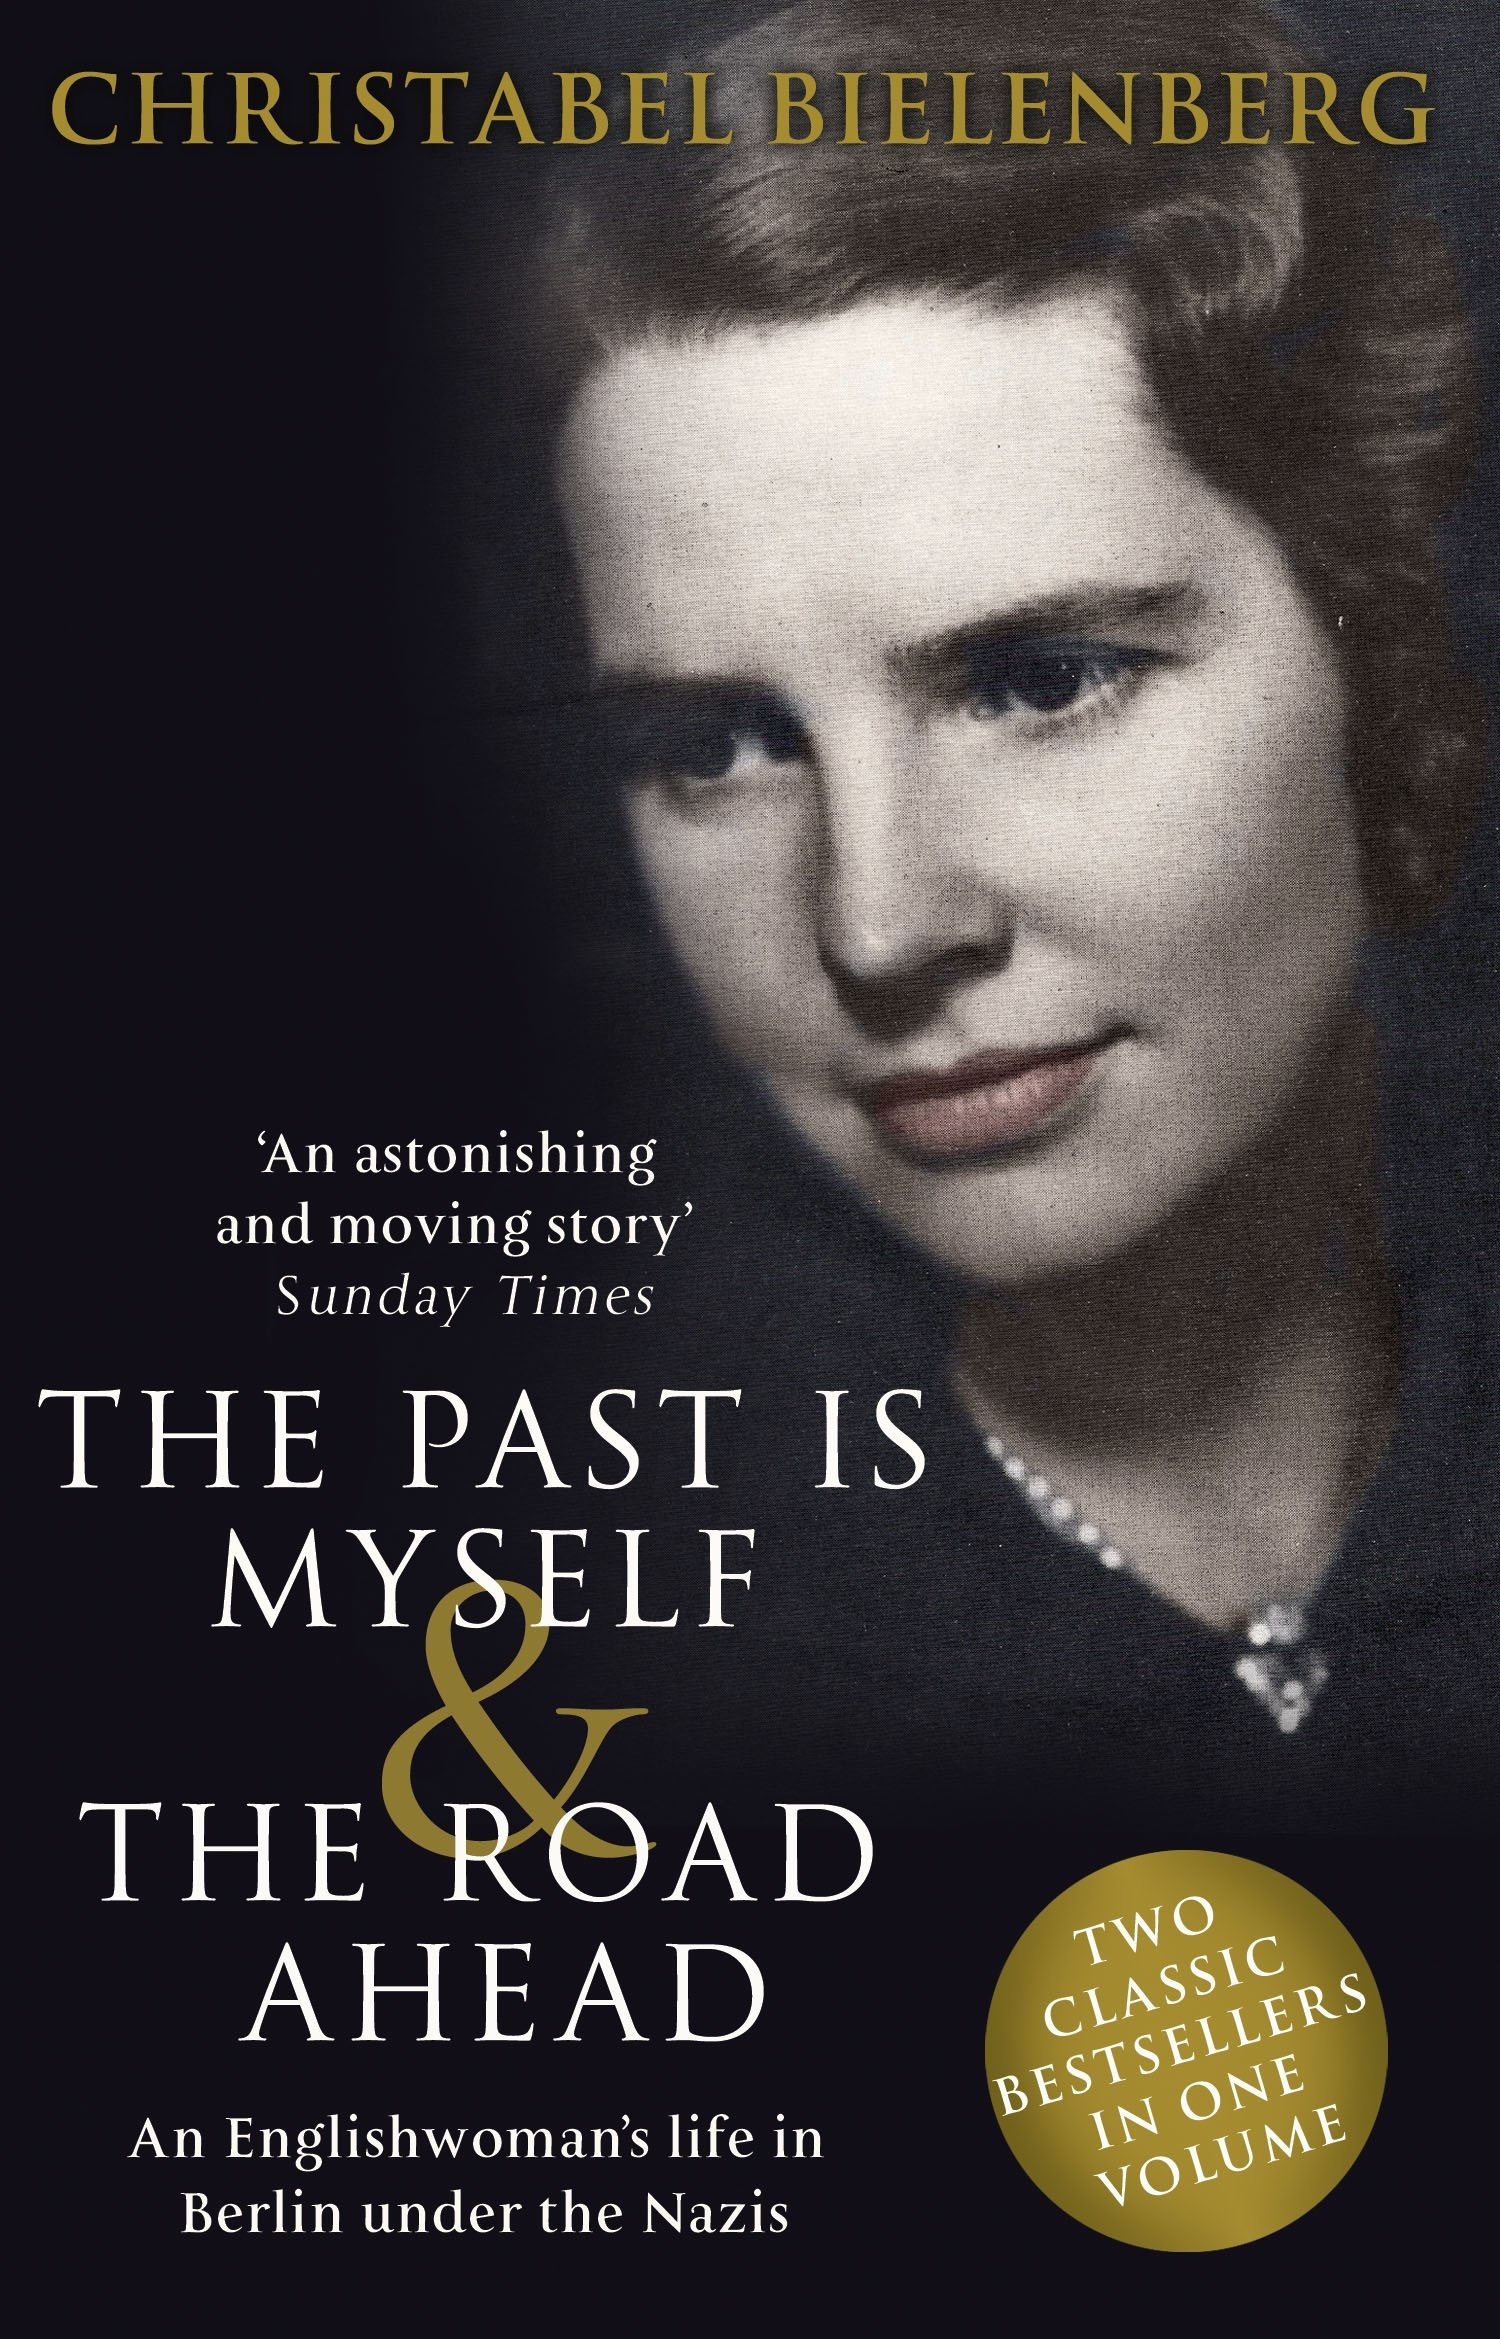 Amazon.com: The Past Is Myself & the Road Ahead Omnibus ...